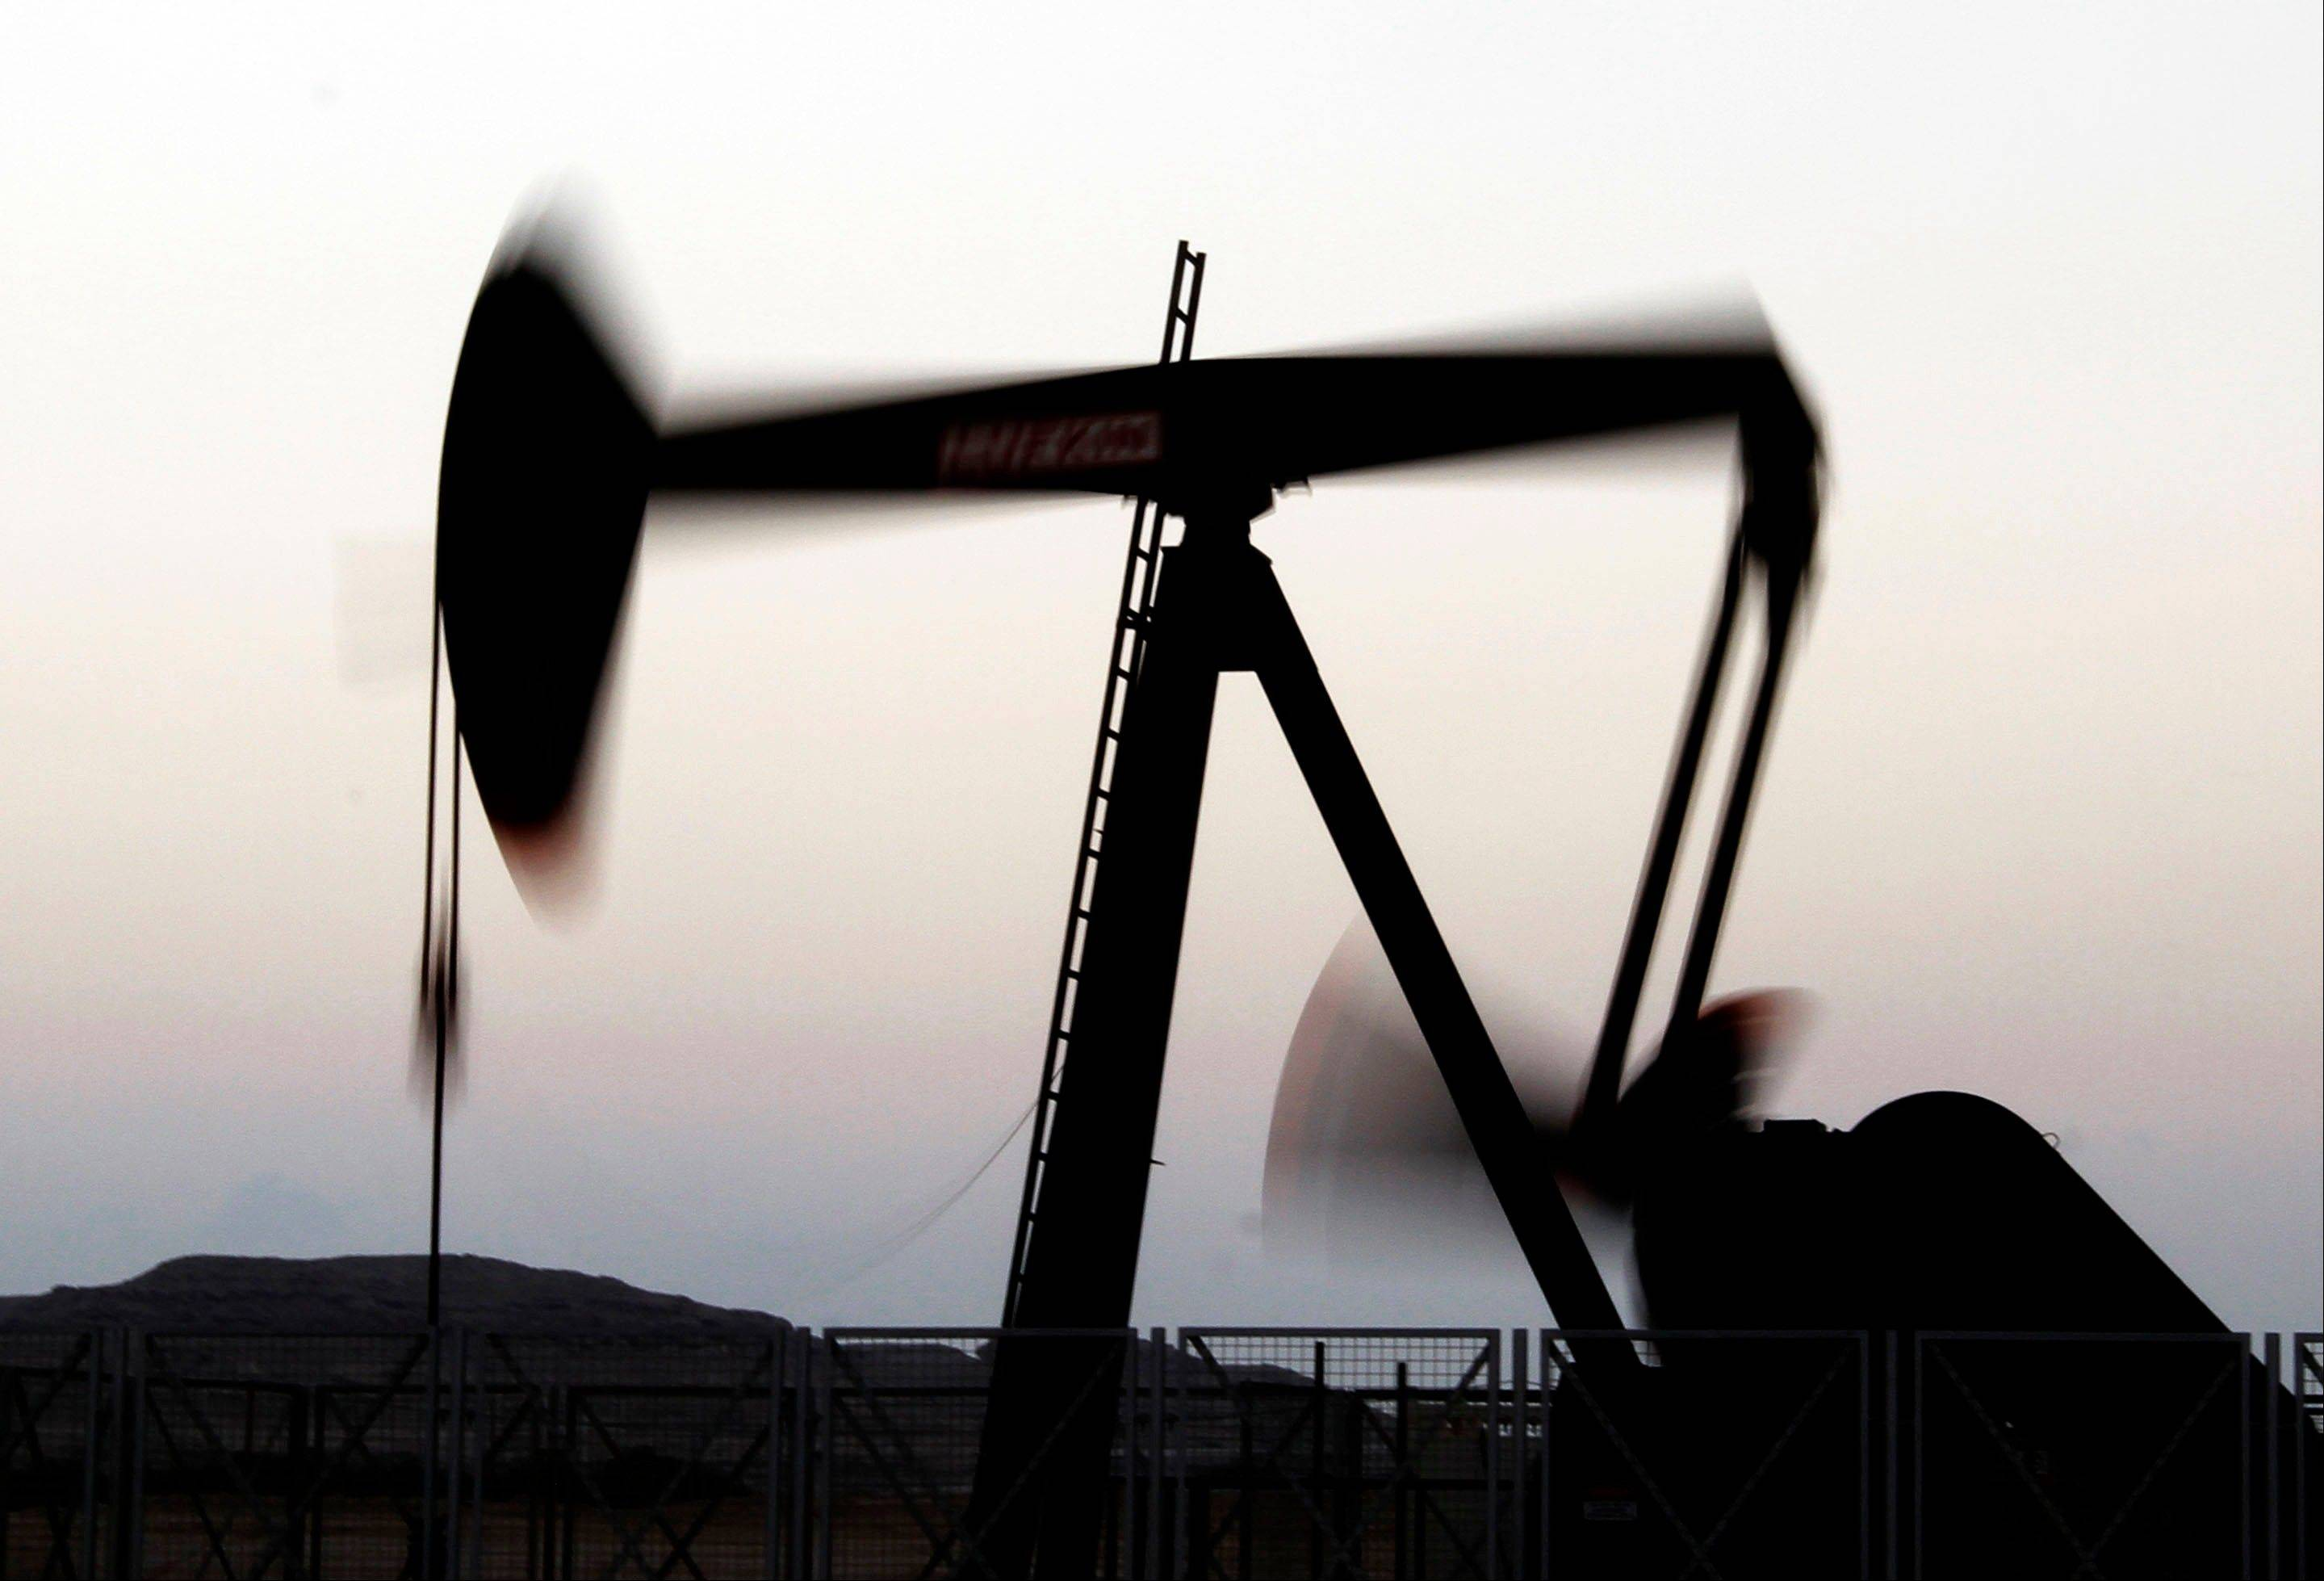 The price of oil fell below $87 a barrel Wednesday after the Organization for Economic Cooperation and Development cut its growth outlook for the U.S. and the 17 countries that use the euro currency.